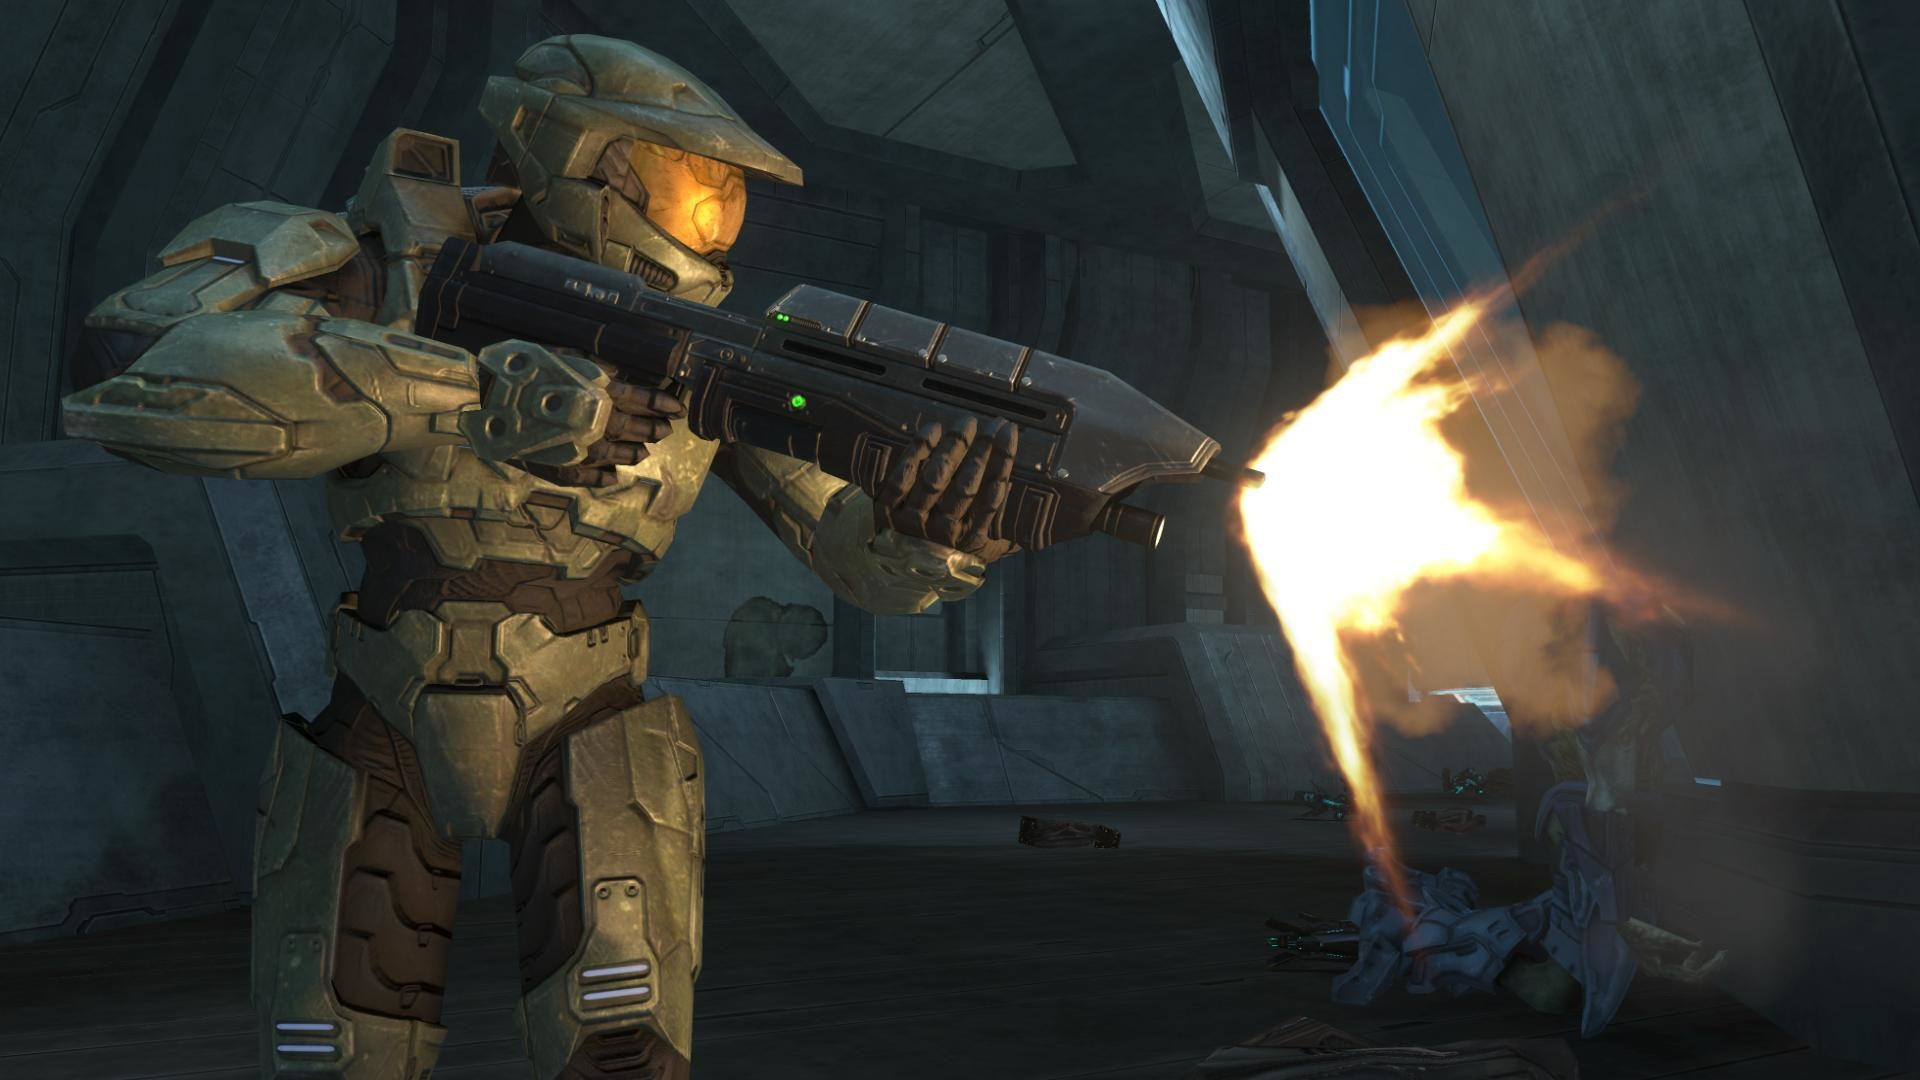 158 best halo images on Pinterest | Videogames, Halo reach and Master chief